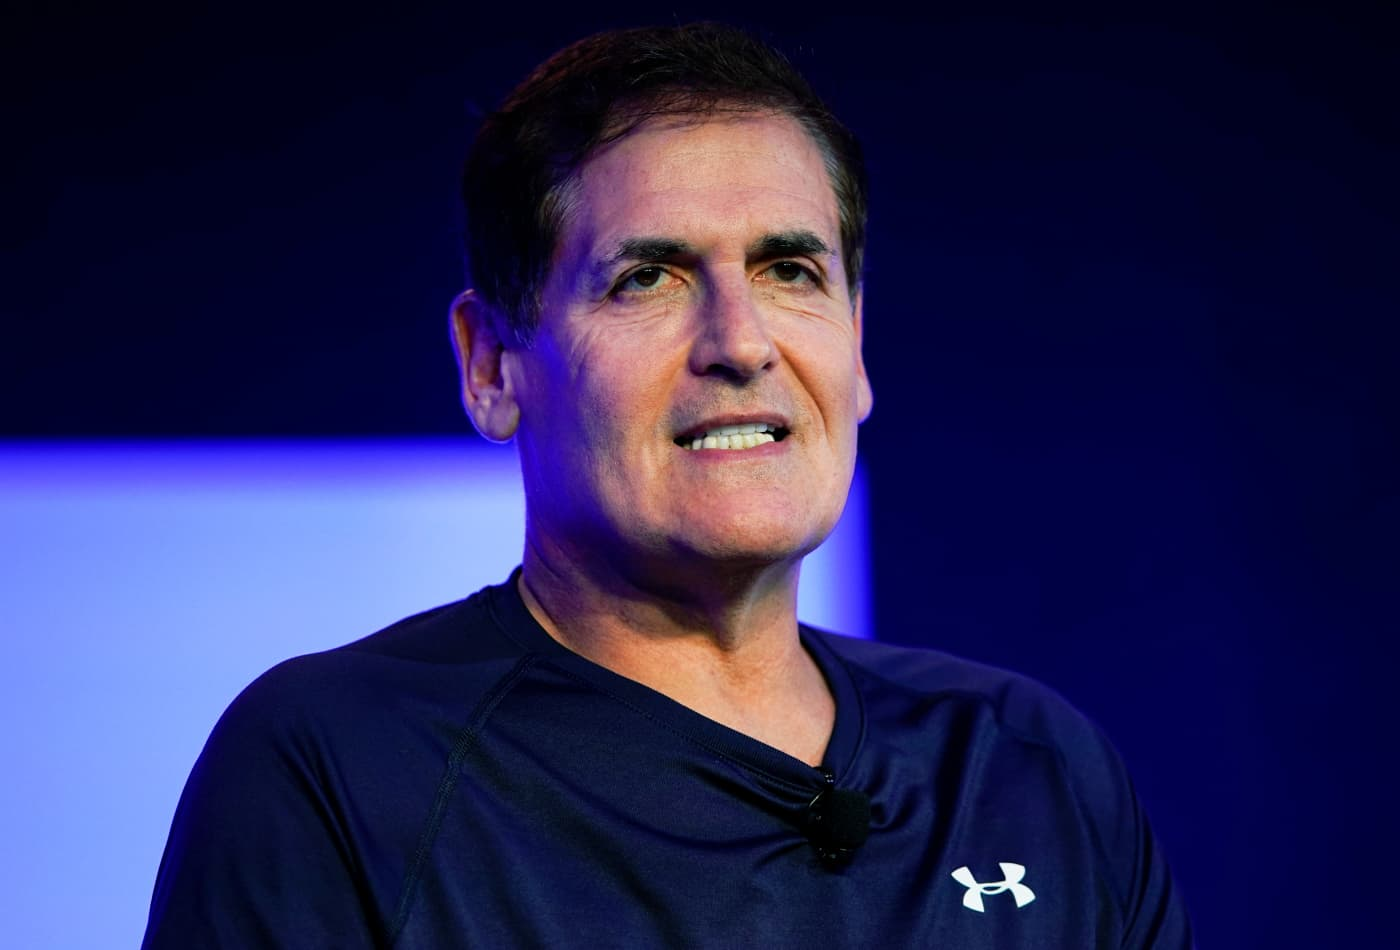 Mark Cuban, who made billions from the dot-com bubble, says here's how you'll know the rally is over